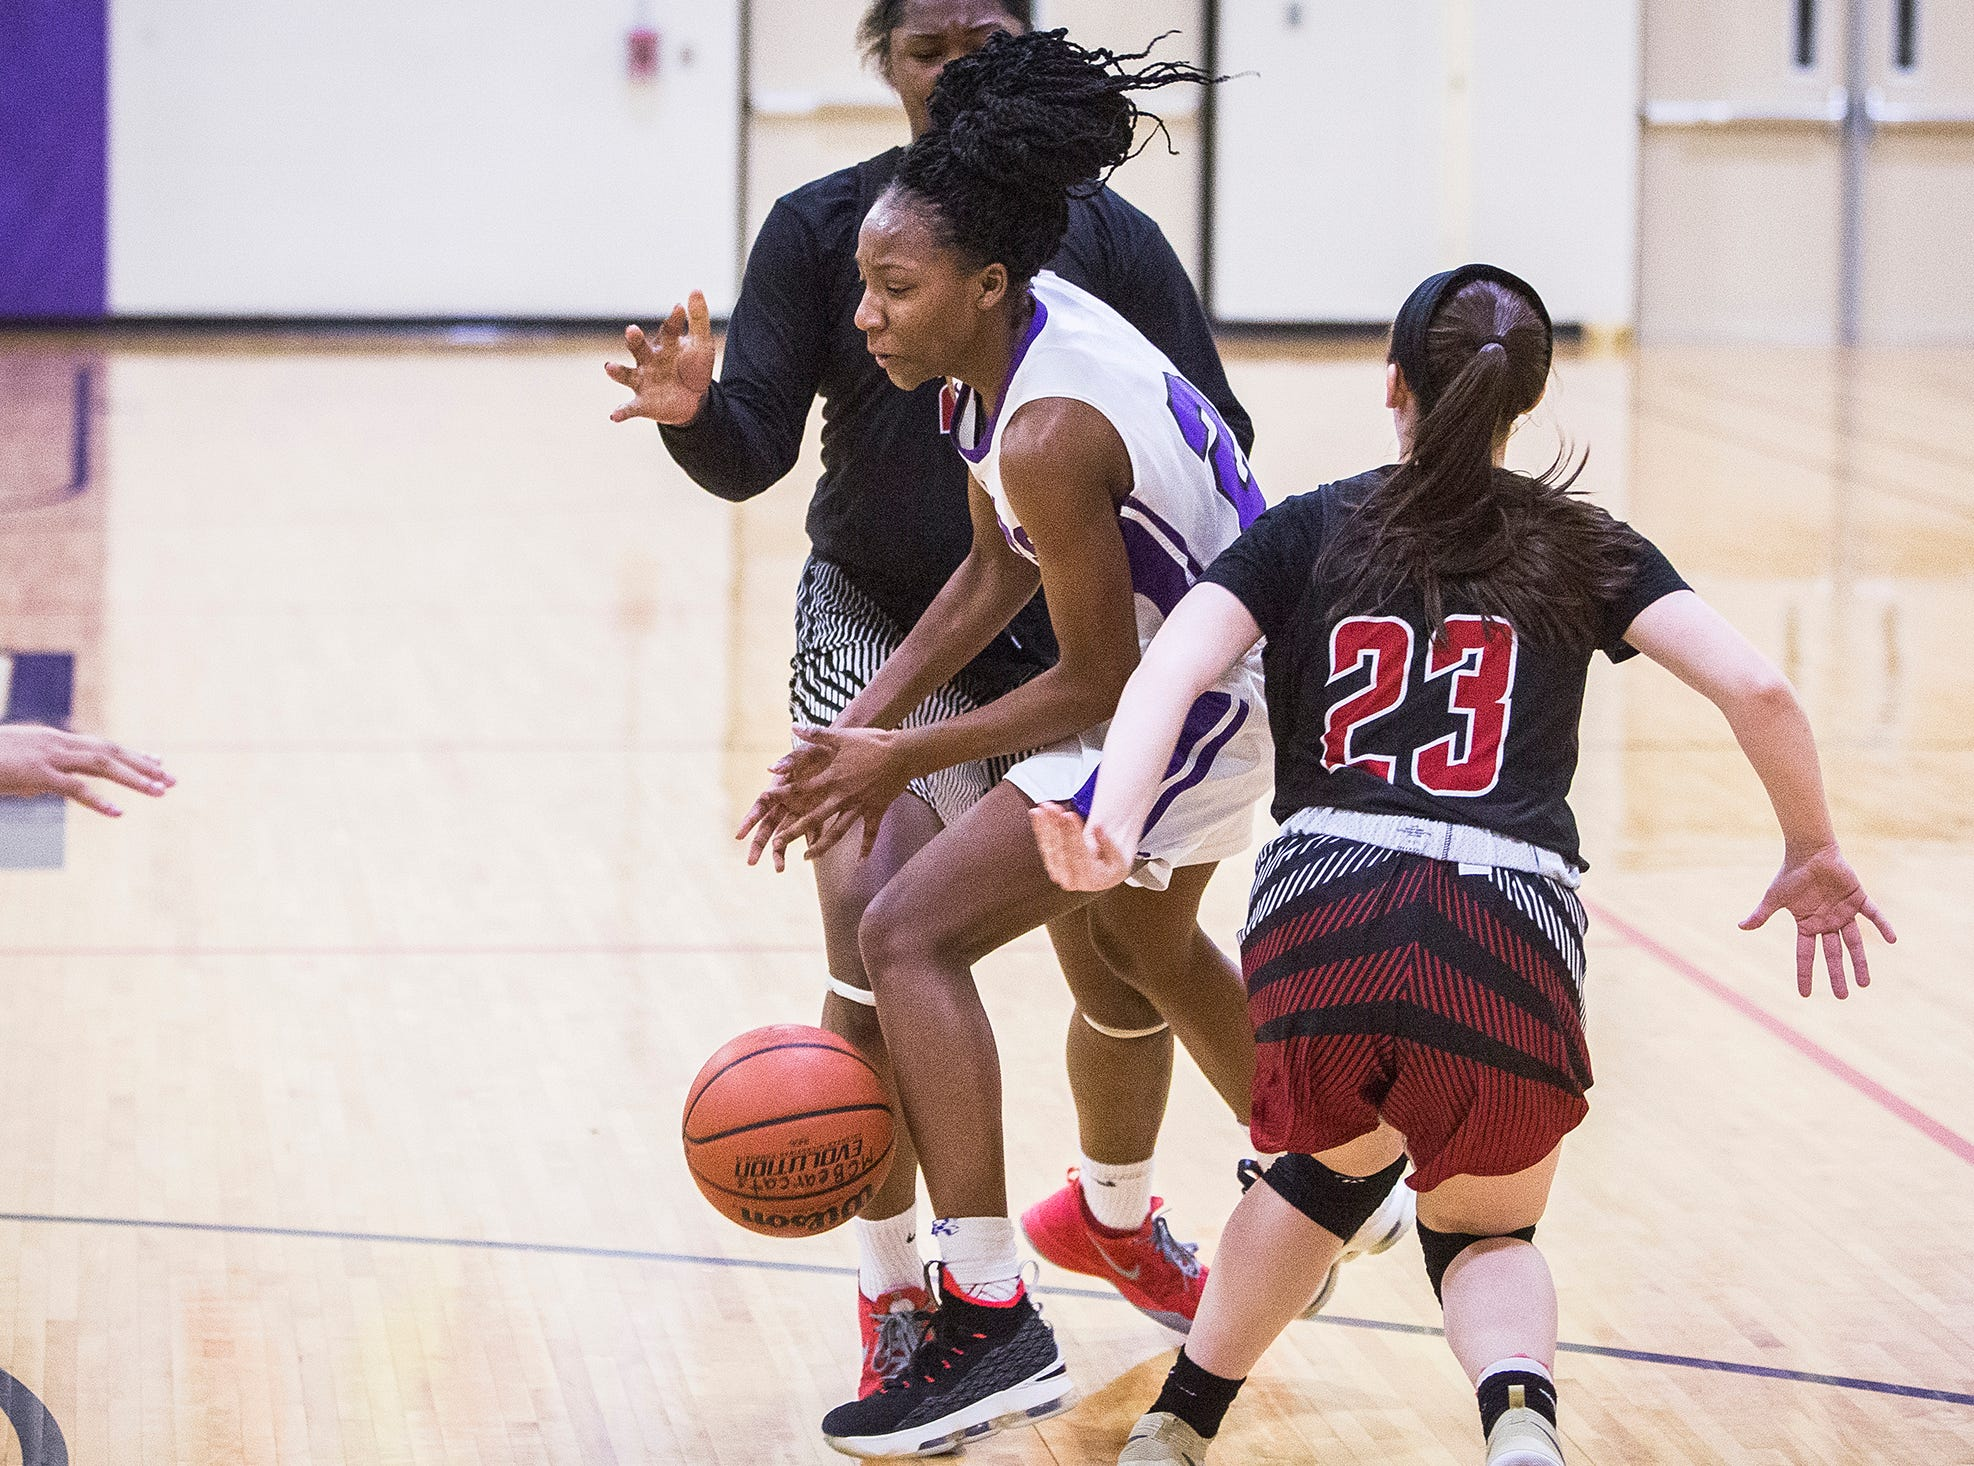 Central's Taydriana Robertson fights past Lafayette Jefferson during their game at Central Friday, Jan. 4, 2019.